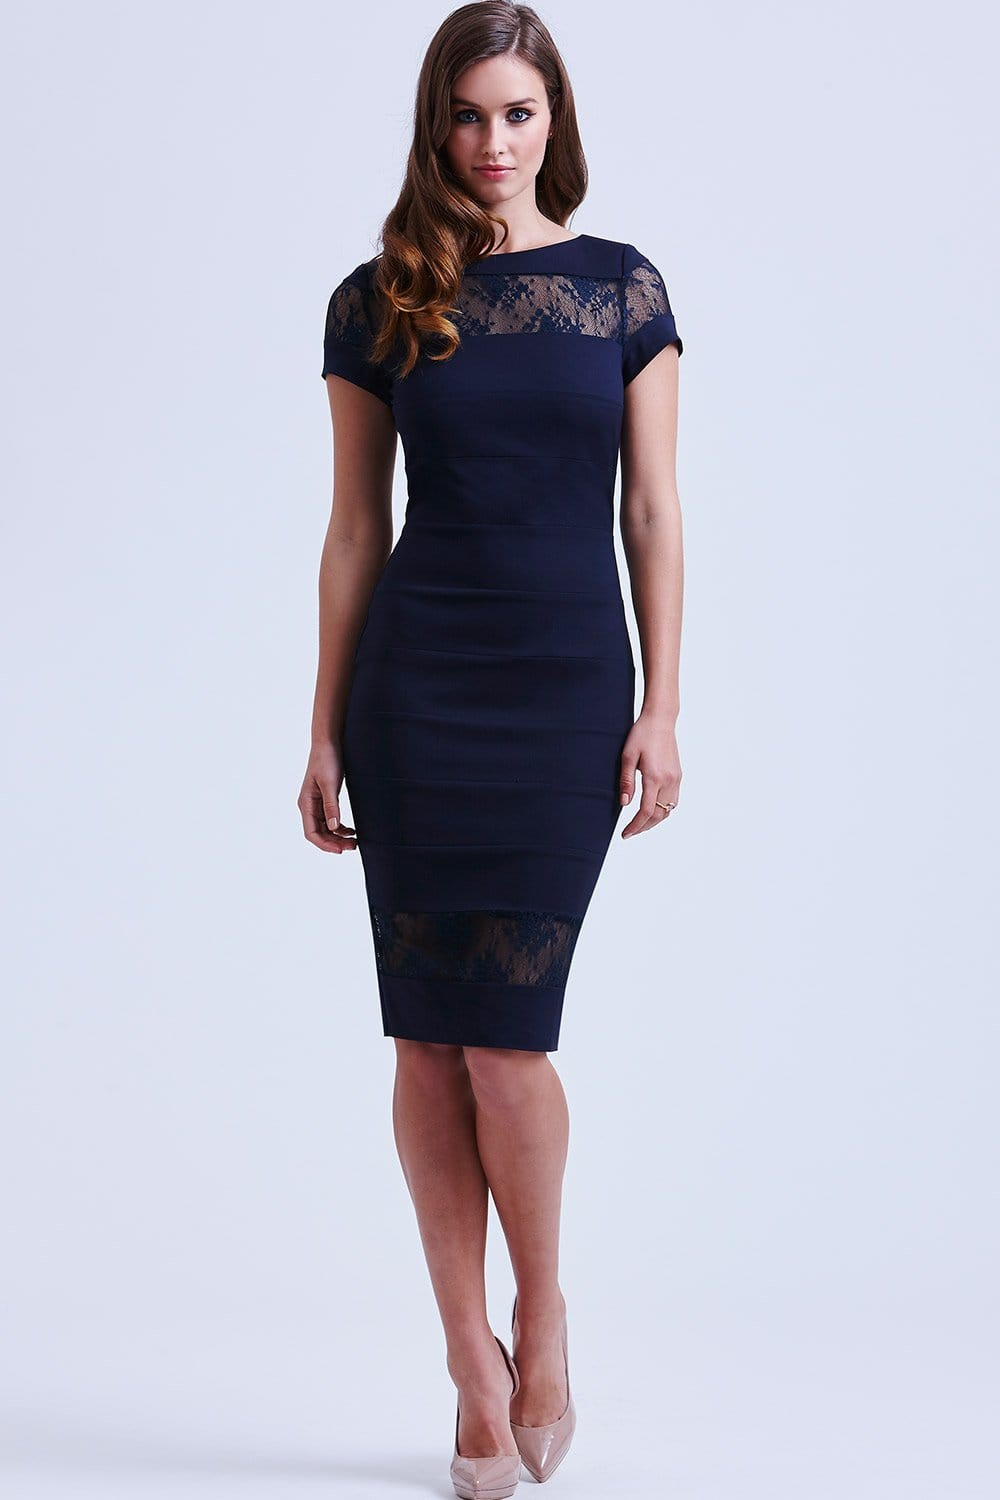 Free shipping BOTH ways on Dresses, Navy, Women, from our vast selection of styles. Fast delivery, and 24/7/ real-person service with a smile. Click or call